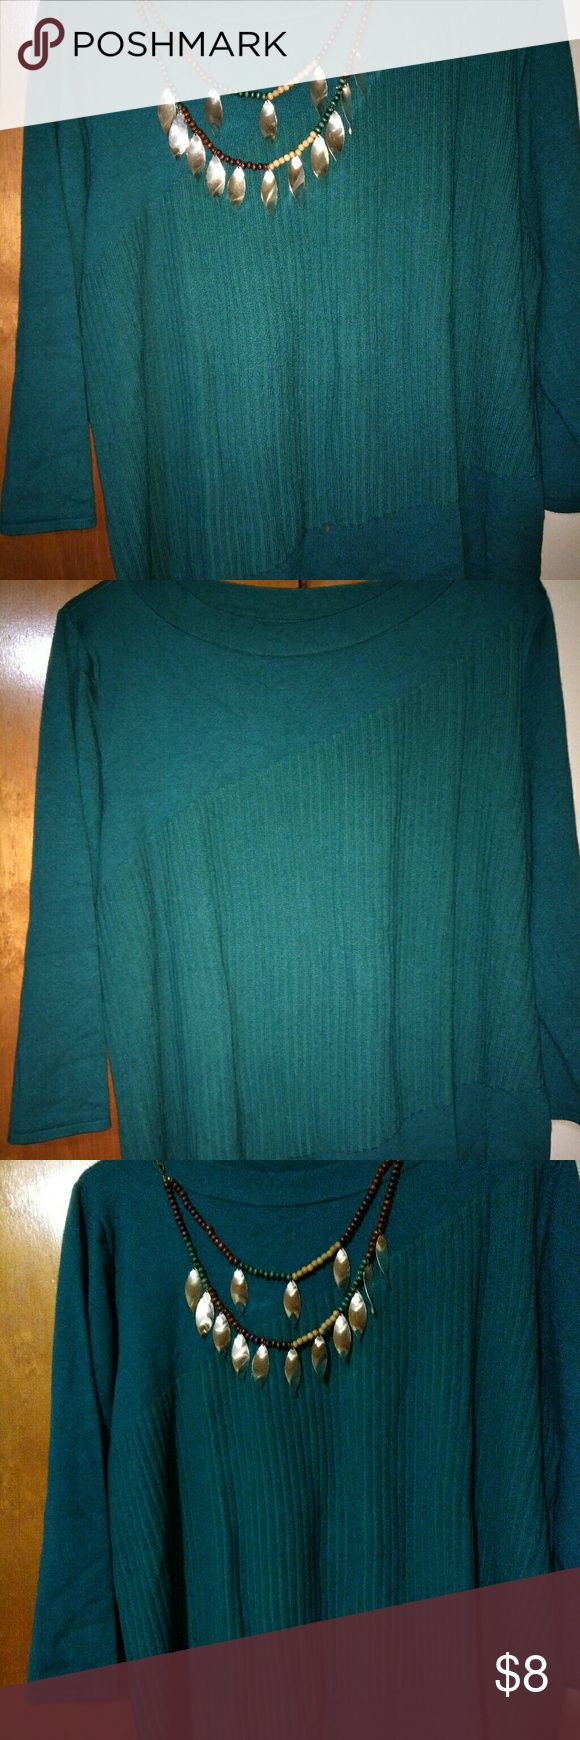 Teal blouse Pretty teal blouse, geometric design on front, stretchy material, almost sweater like. Apt. 9 Sweaters Crew & Scoop Necks